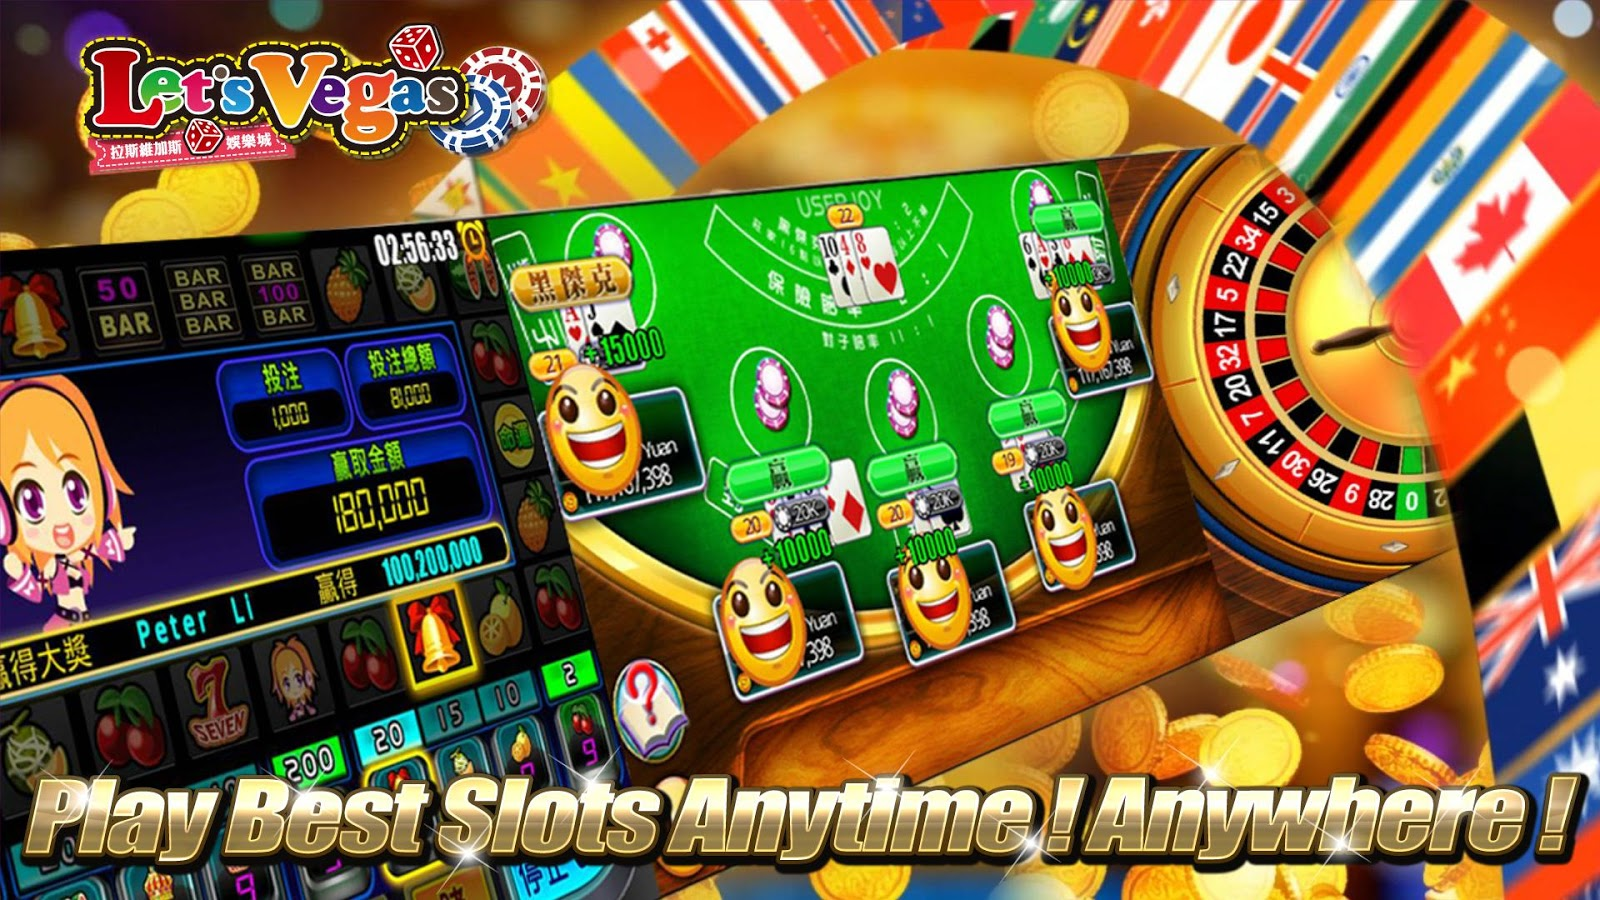 Let's Vegas Slots Screenshot 7